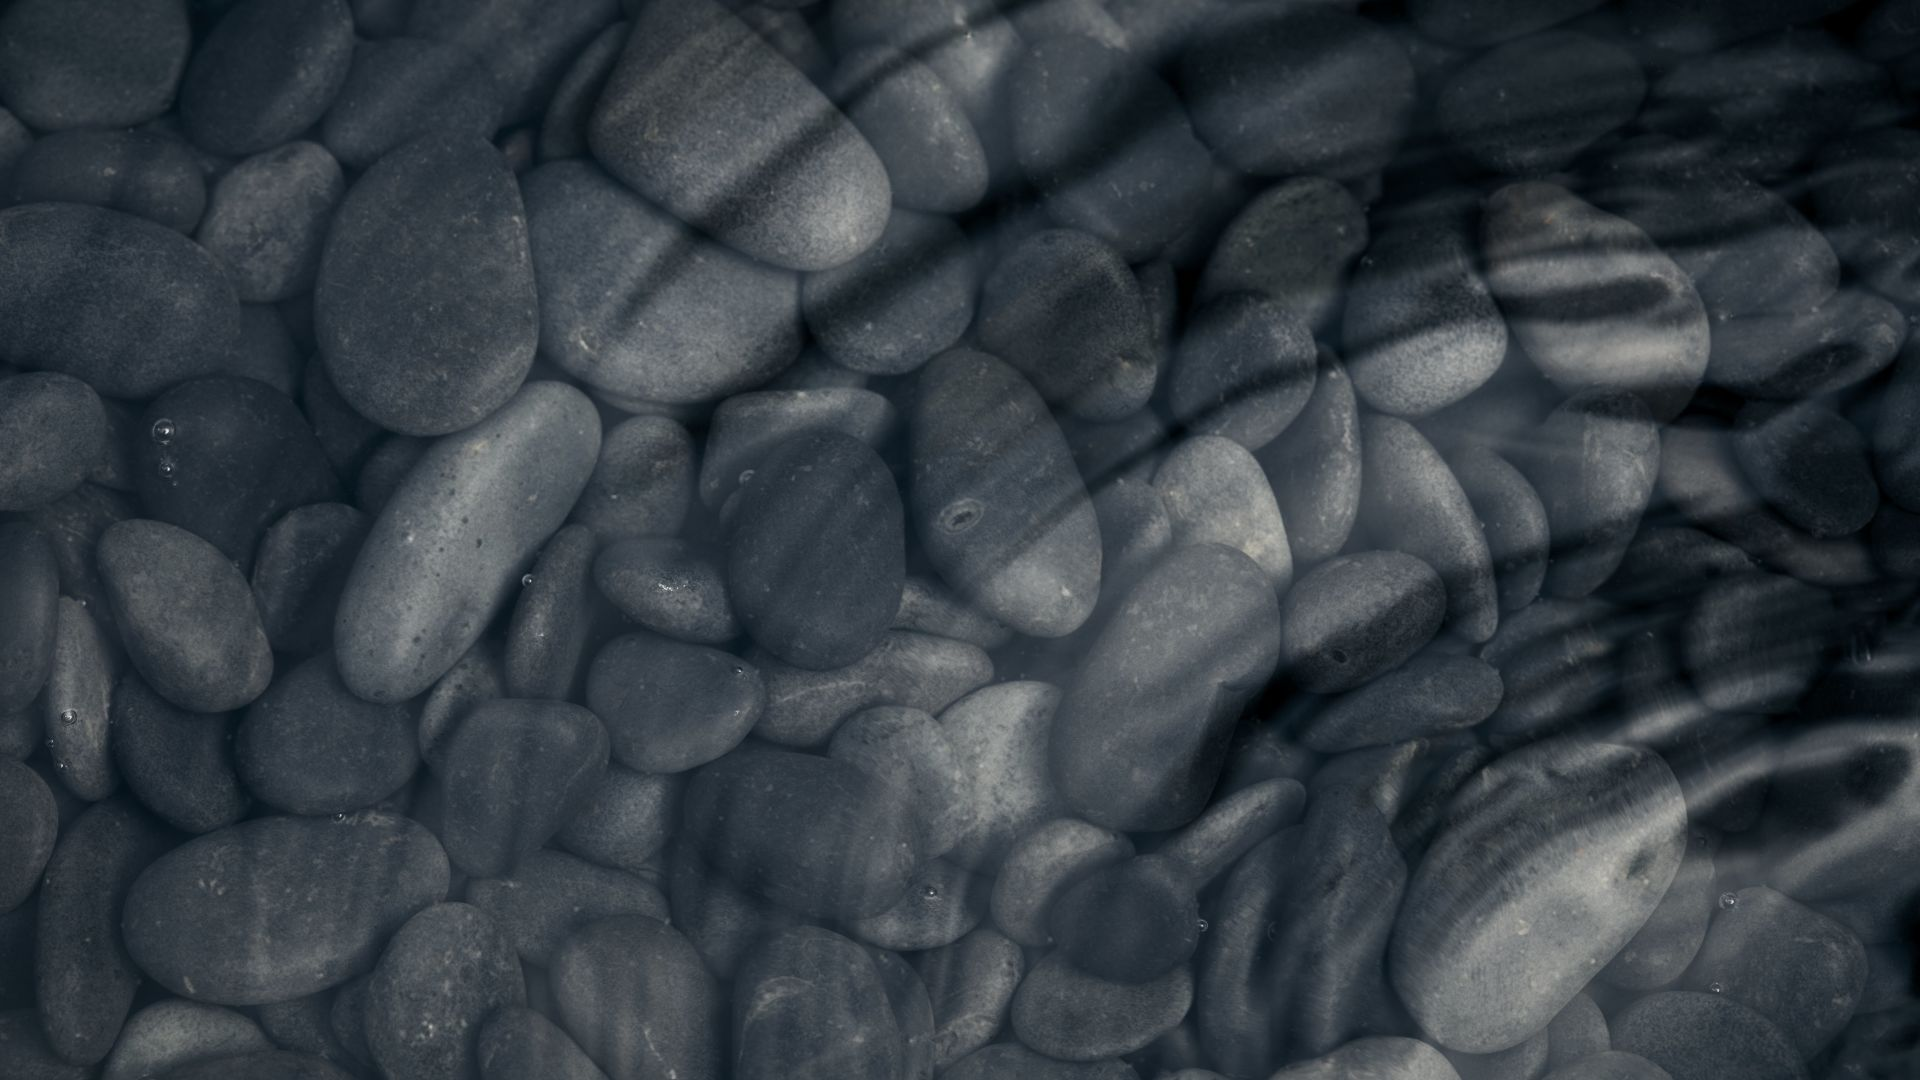 A Close Up Of A Rock